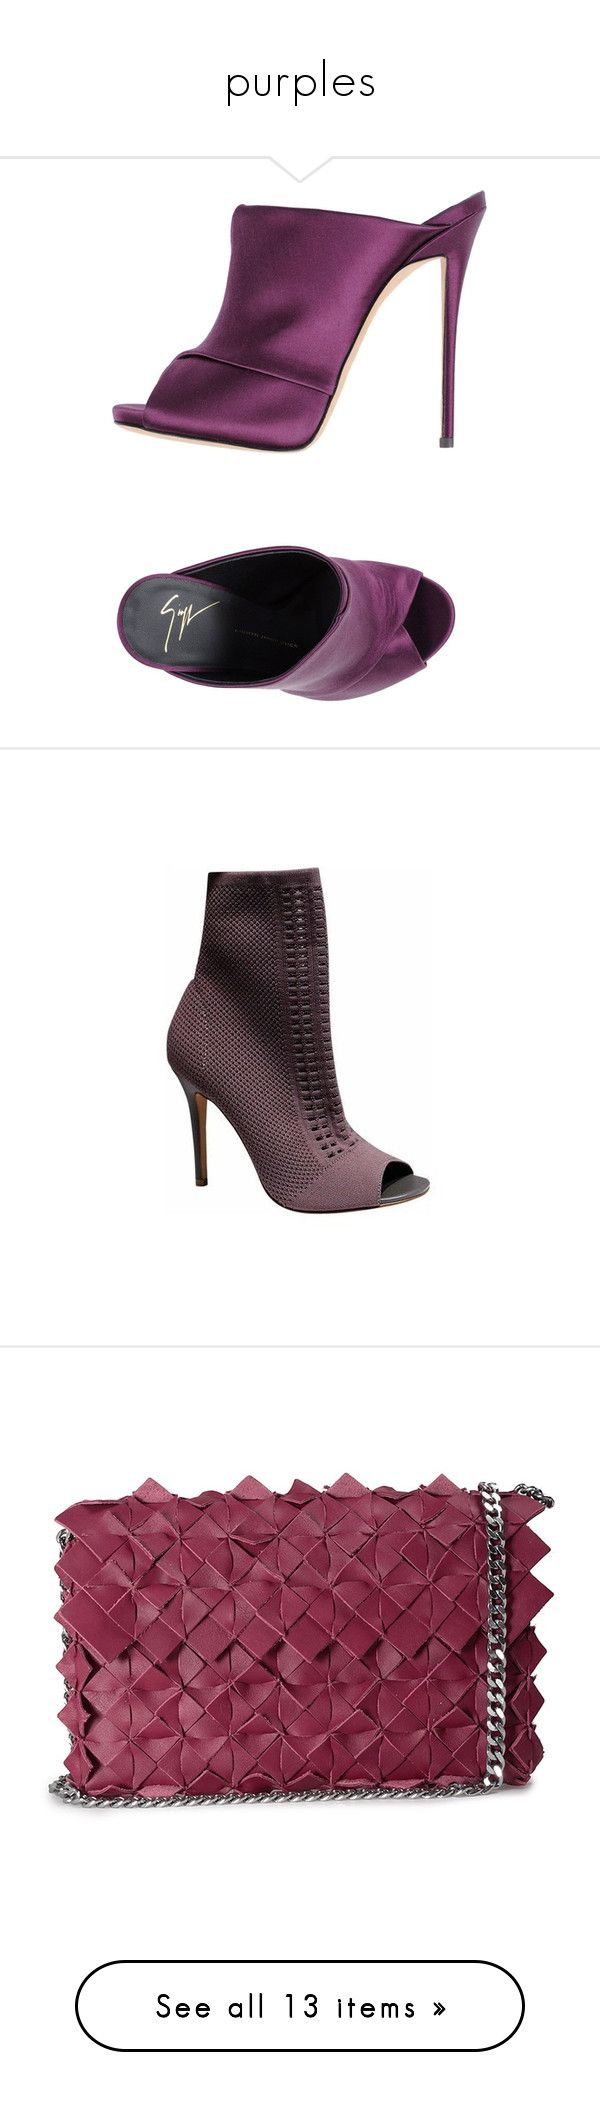 """""""purples"""" by jeniferkcarsrud ❤ liked on Polyvore featuring shoes, sandals, purple, purple sandals, giuseppe zanotti, giuseppe zanotti shoes, animal shoes, leather sole sandals, boots and ankle booties"""